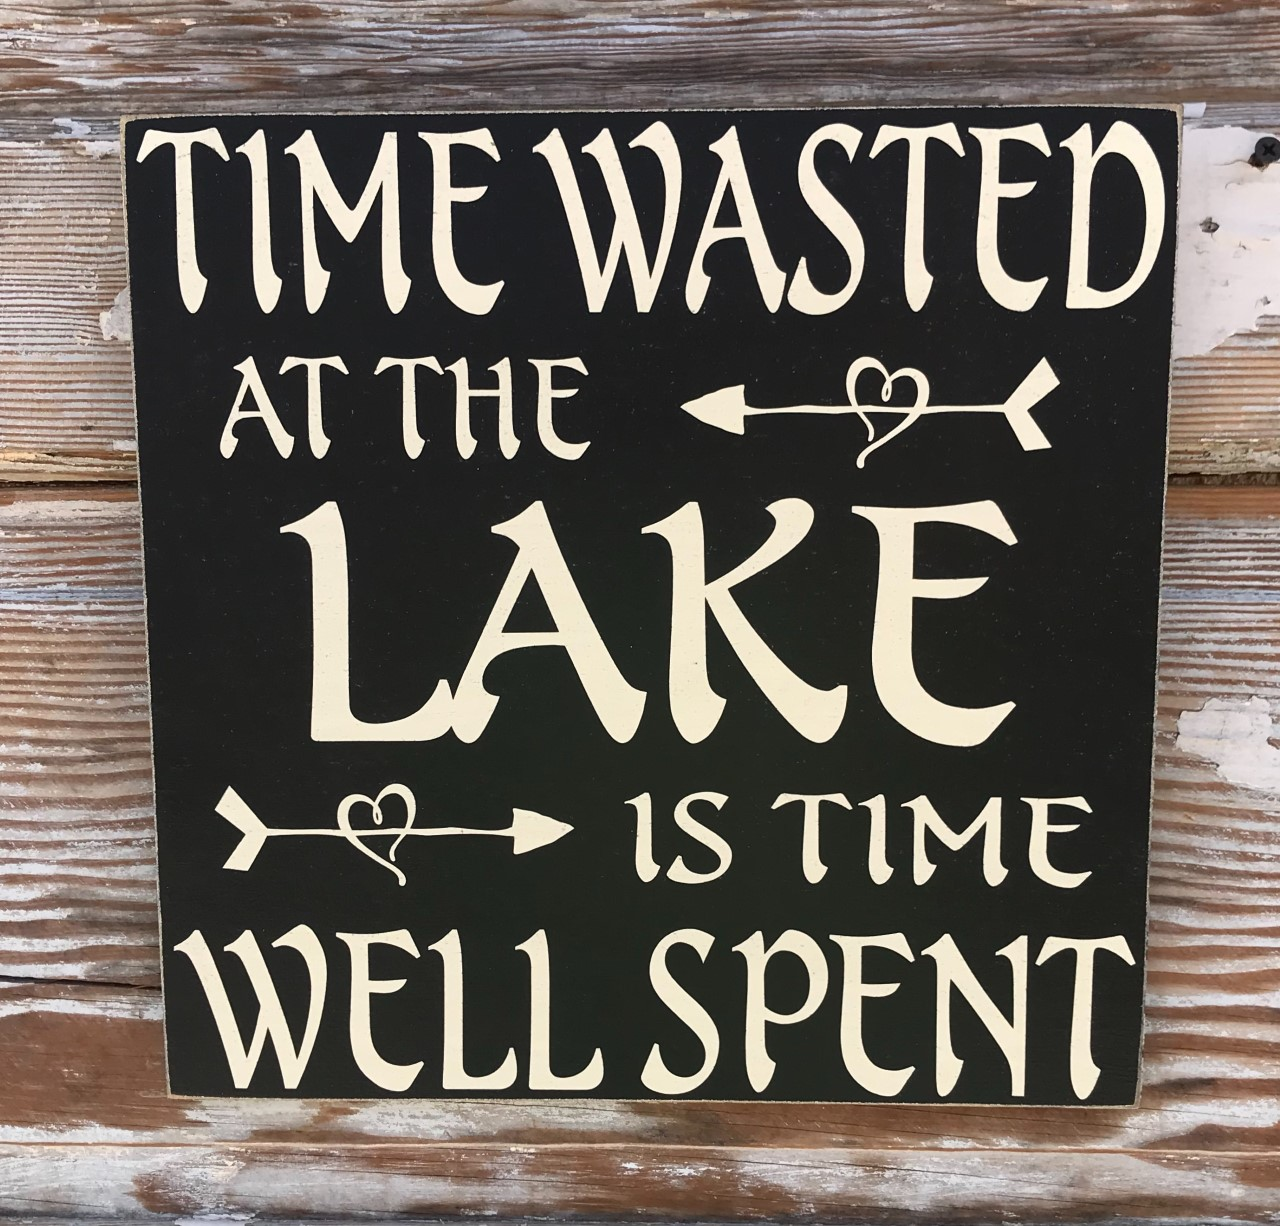 Time Wasted At The Lake Is Time Well Spent.  Wood Sign